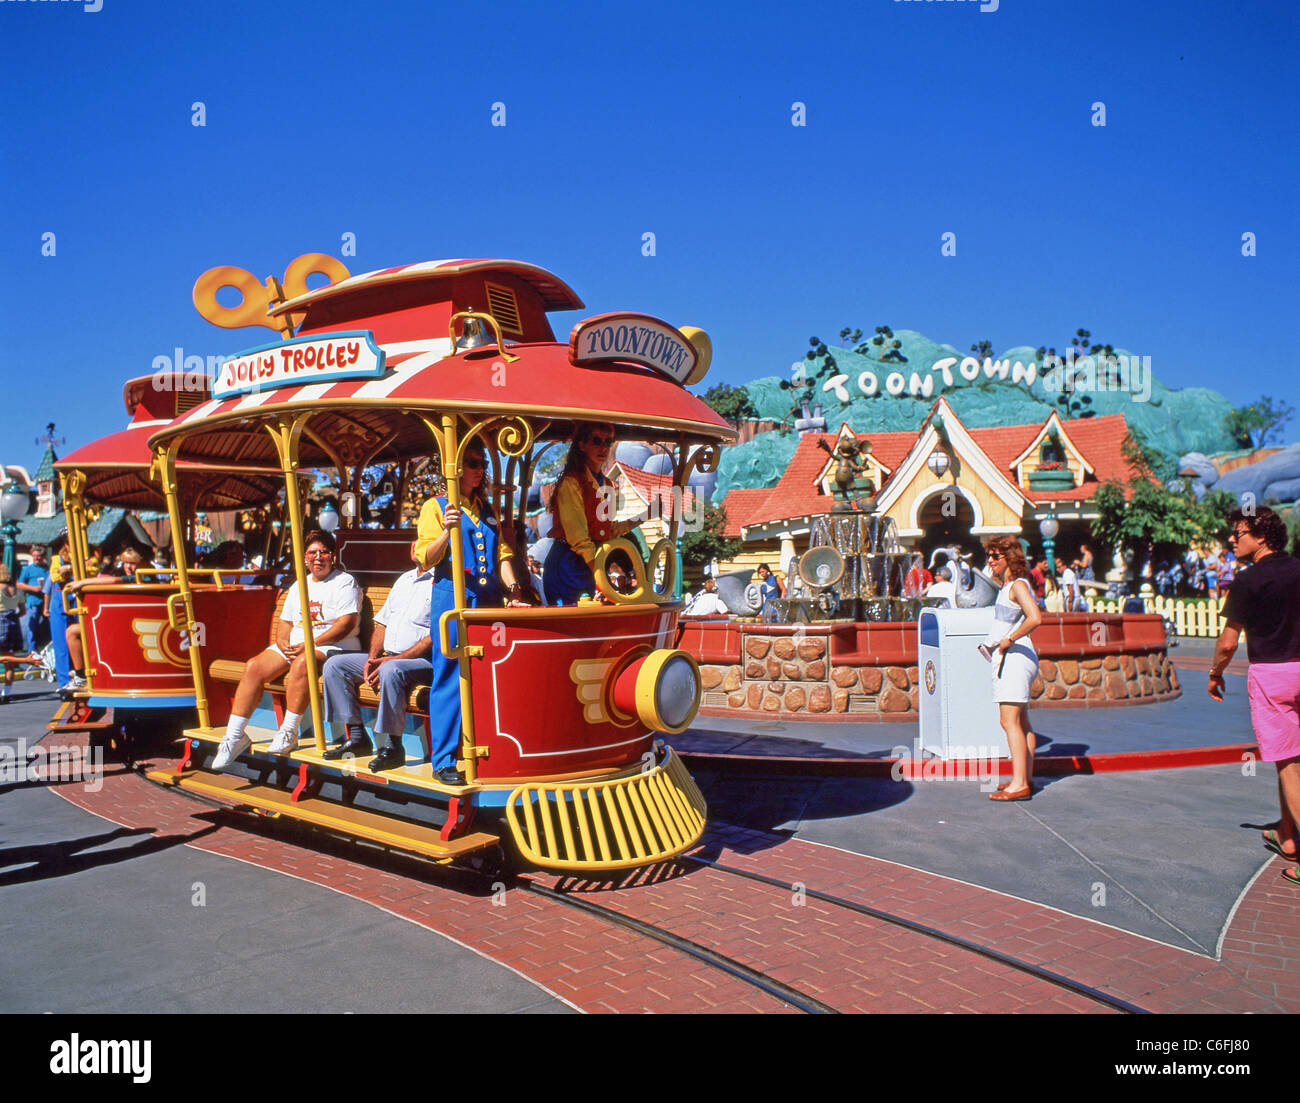 Jolly Trolley, Mickey's Toontown, Disneyland, Anaheim, California, United States of America - Stock Image